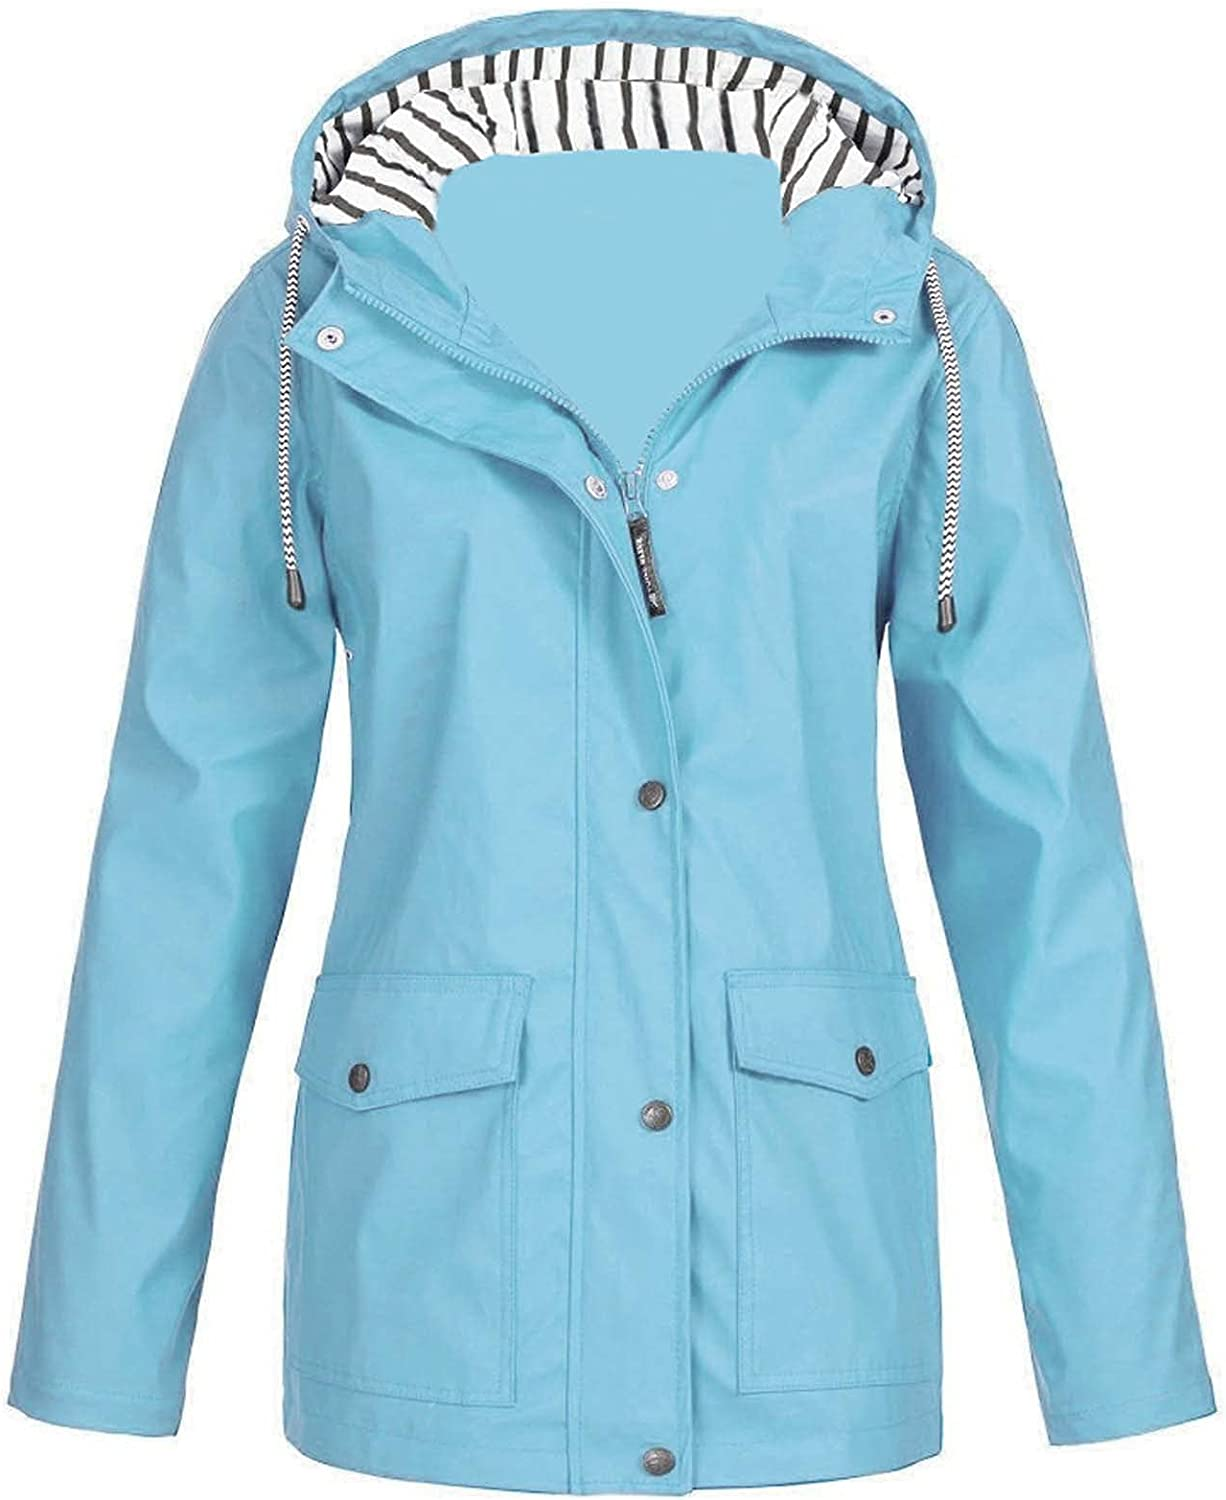 Womens Solid Drawstring Hooded Jacket Long Sleeve Button Waterproof Raincoat With Pockets Casual Windproof Tops